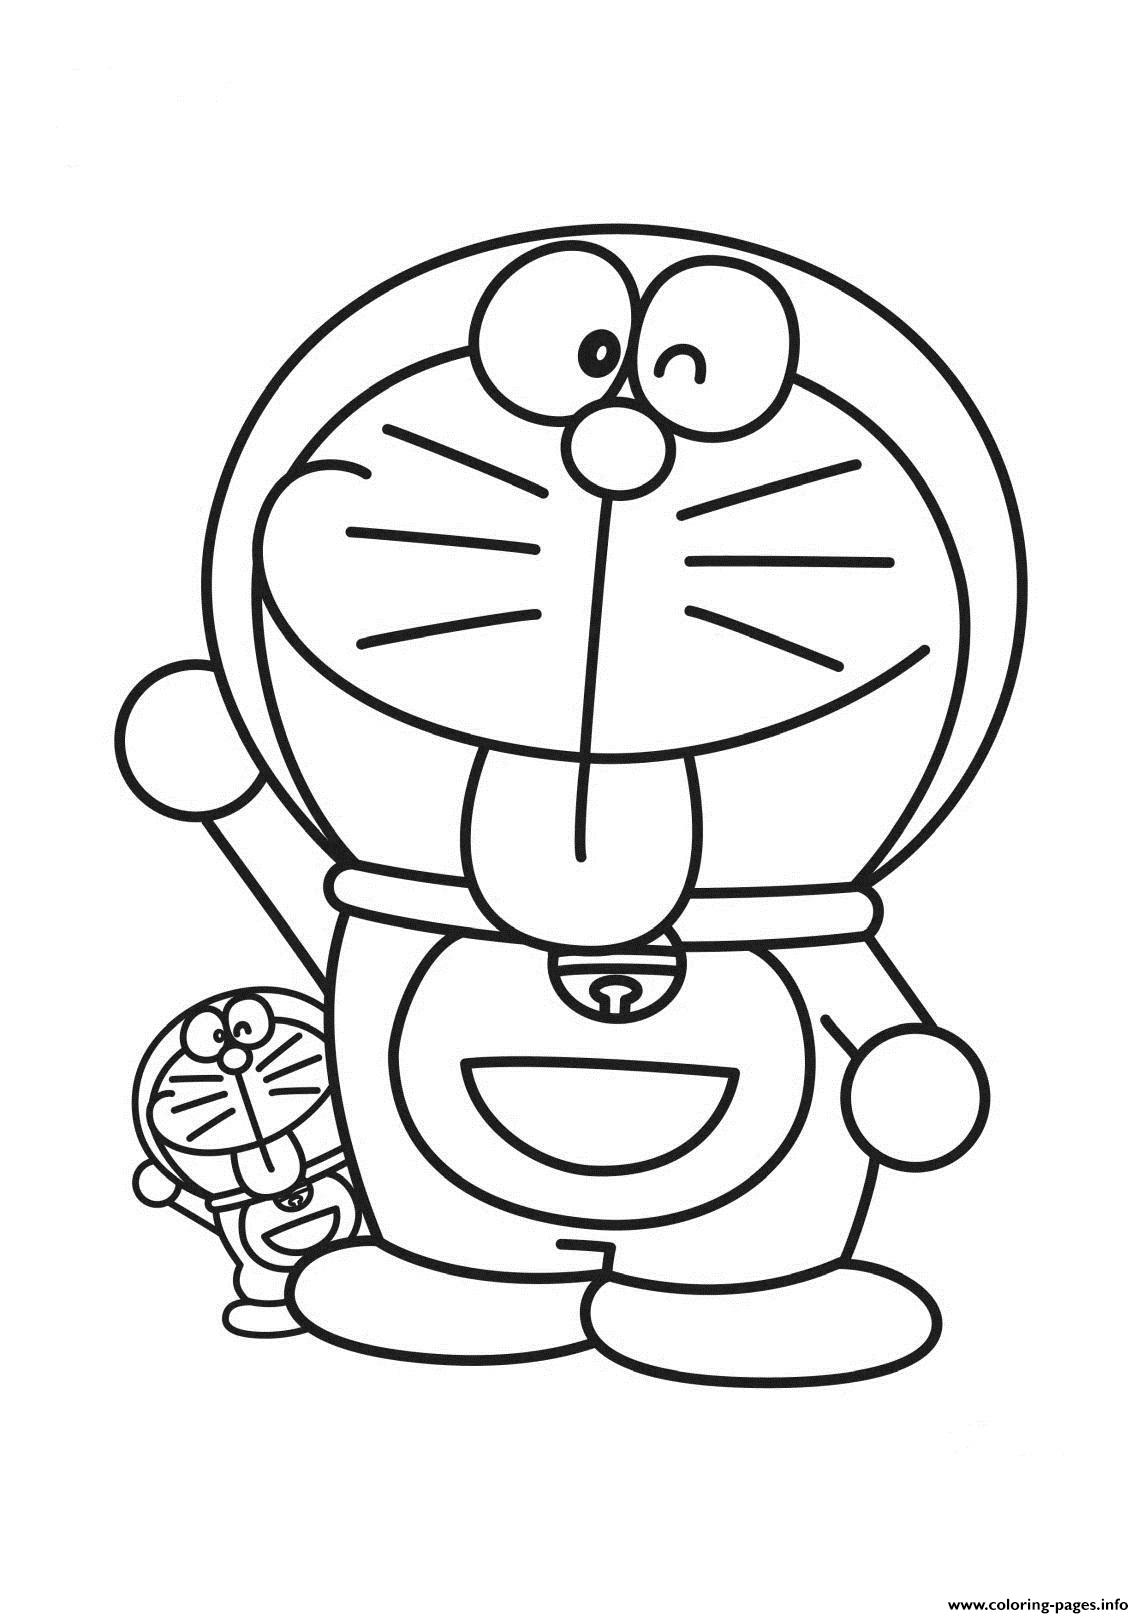 Coloring games to play - Doraemon And Small House 589e Coloring Pages Free Doraemon Boys Download Doraemon Colouring Games Online Play